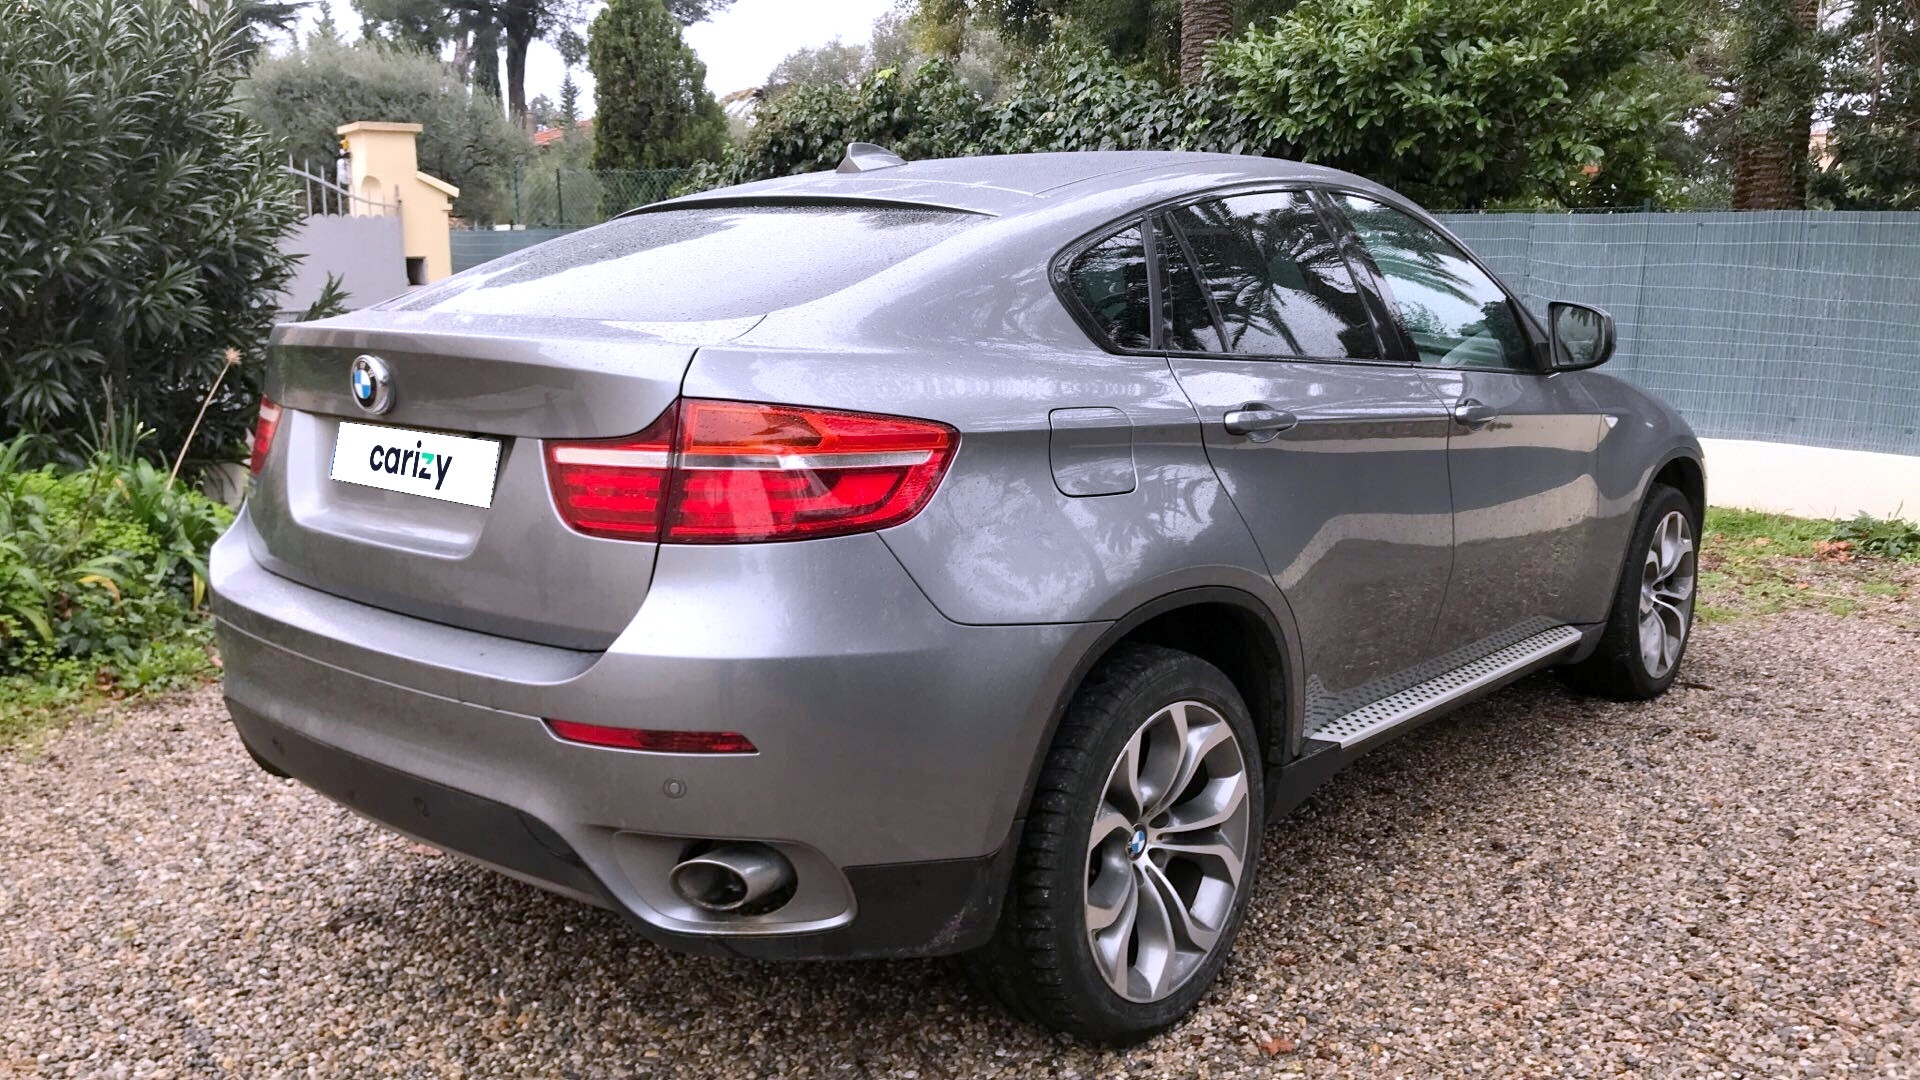 Bmw X6 E71 Lci D Occasion X6 Xdrive40d 306ch Exclusive Ultimate A Antibes Carizy